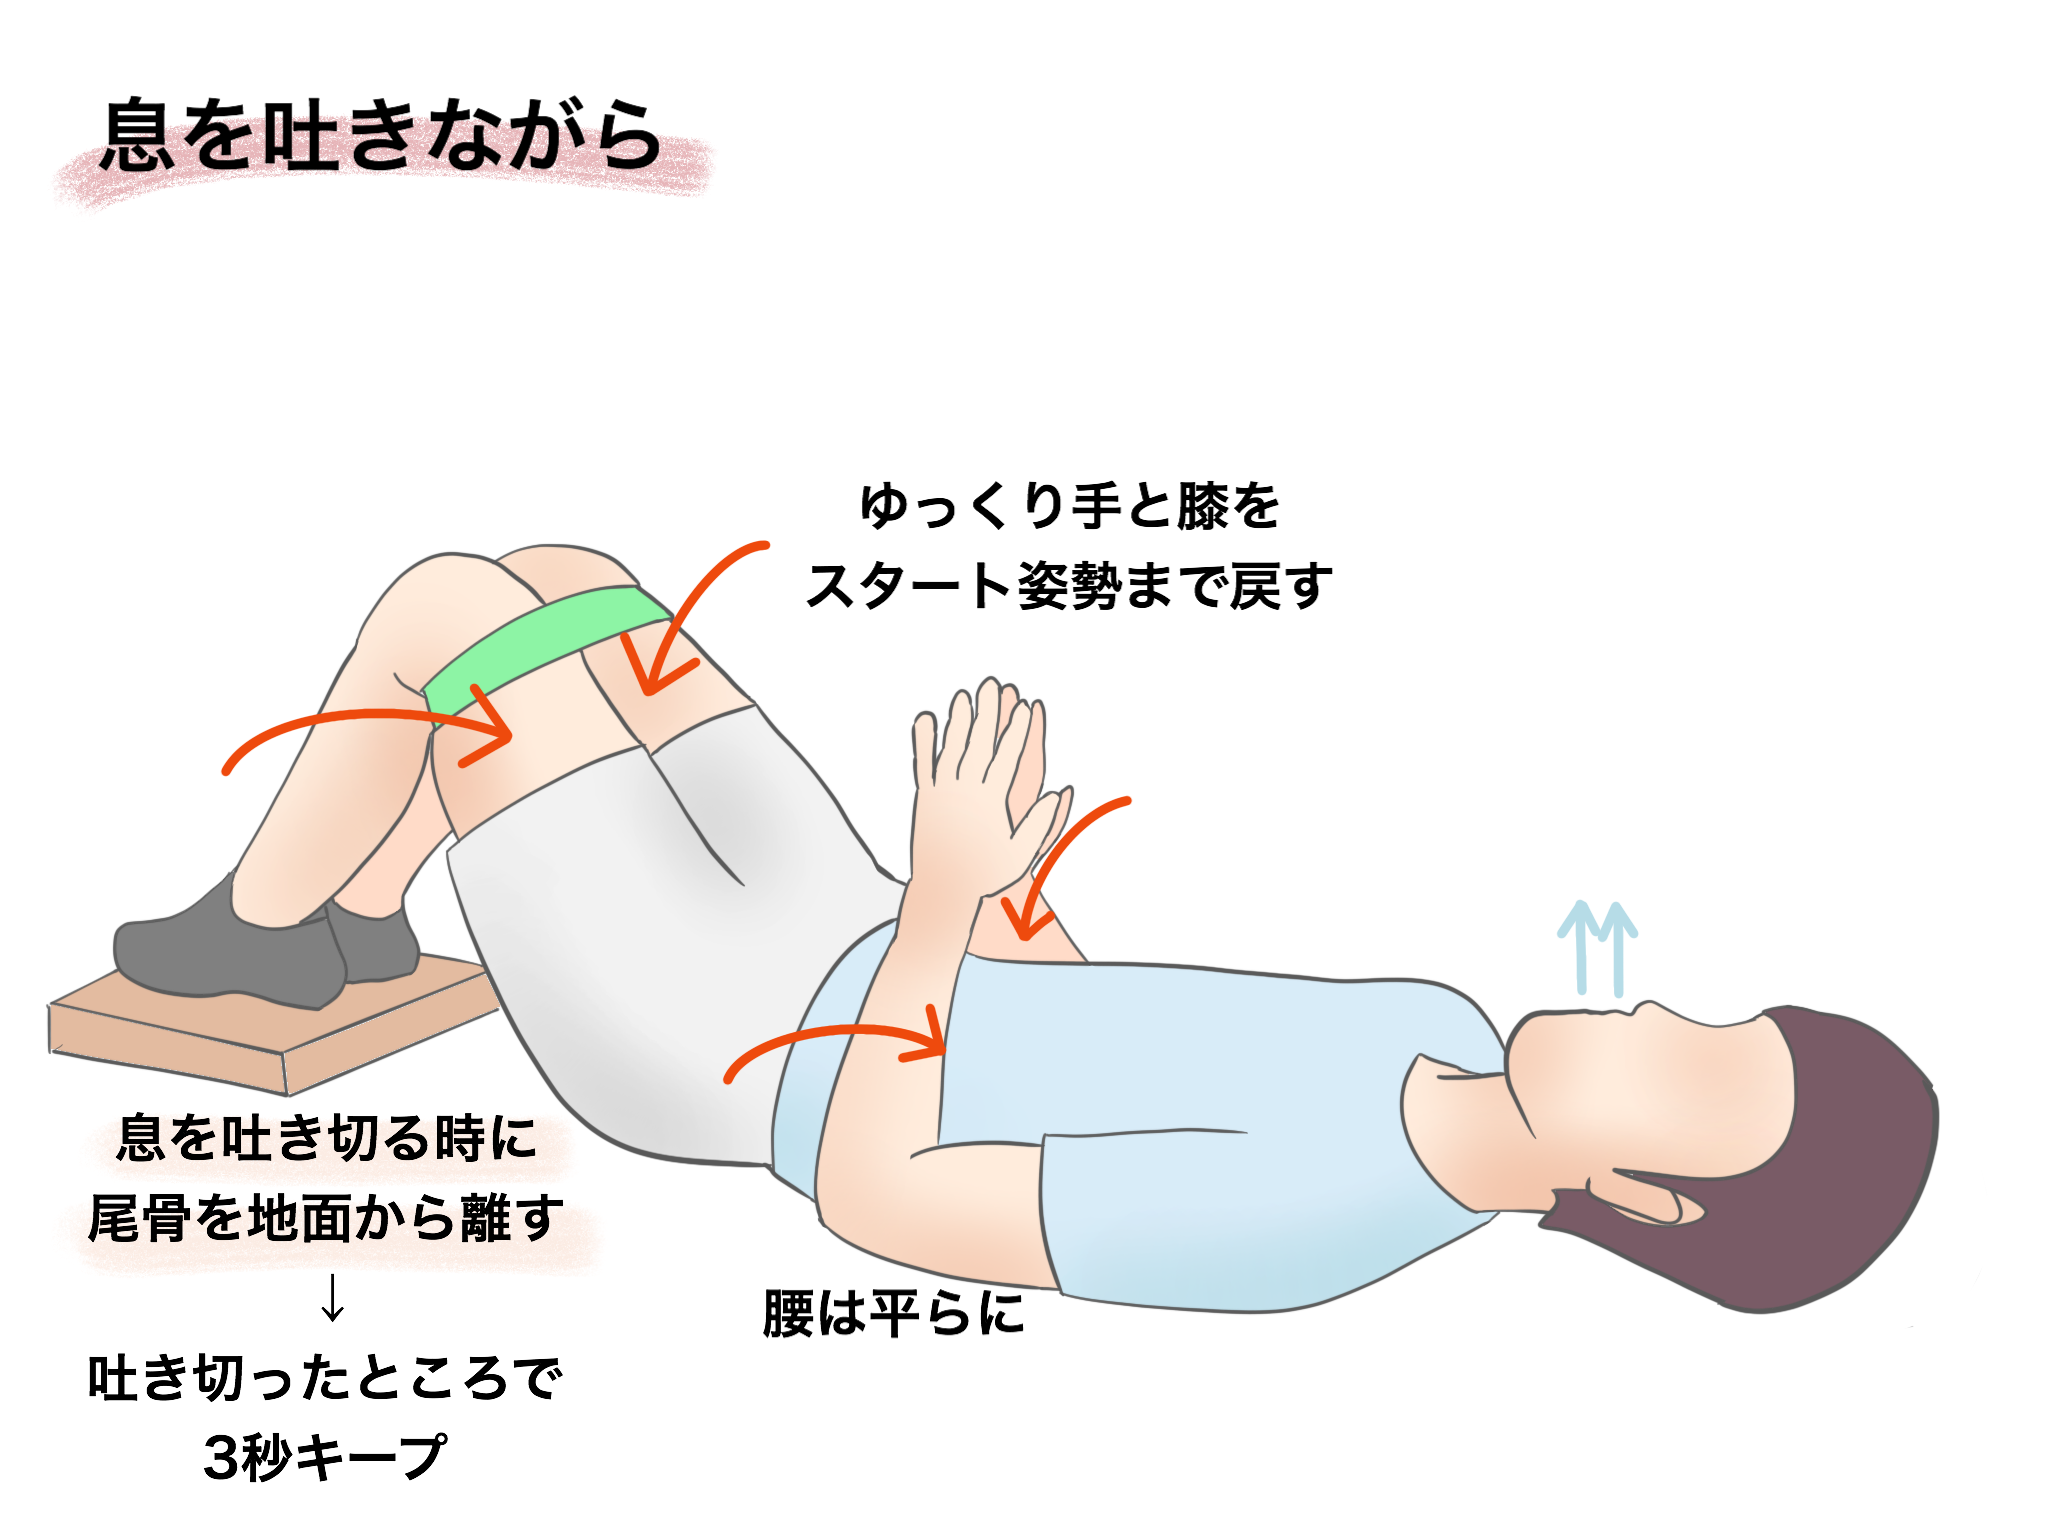 Supine hooklying synchronized resisted glute max【金沢市のアルコット接骨院のパーソナルトレーニング】